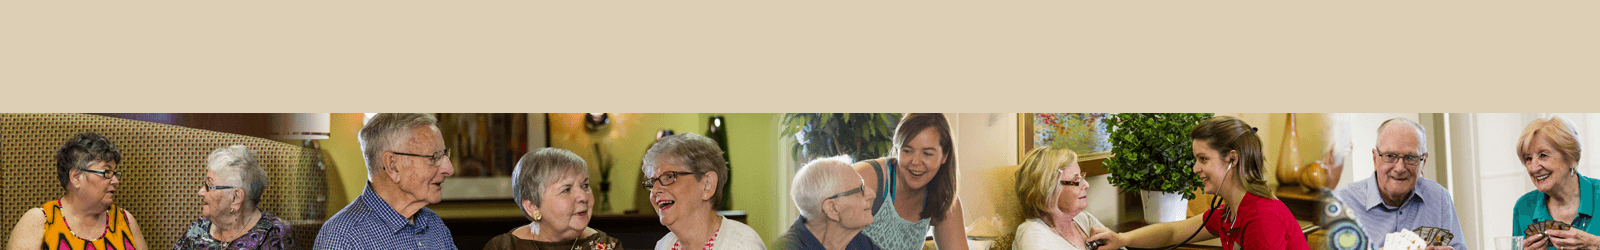 Symphony Senior Living provides very compassionate assisted living services